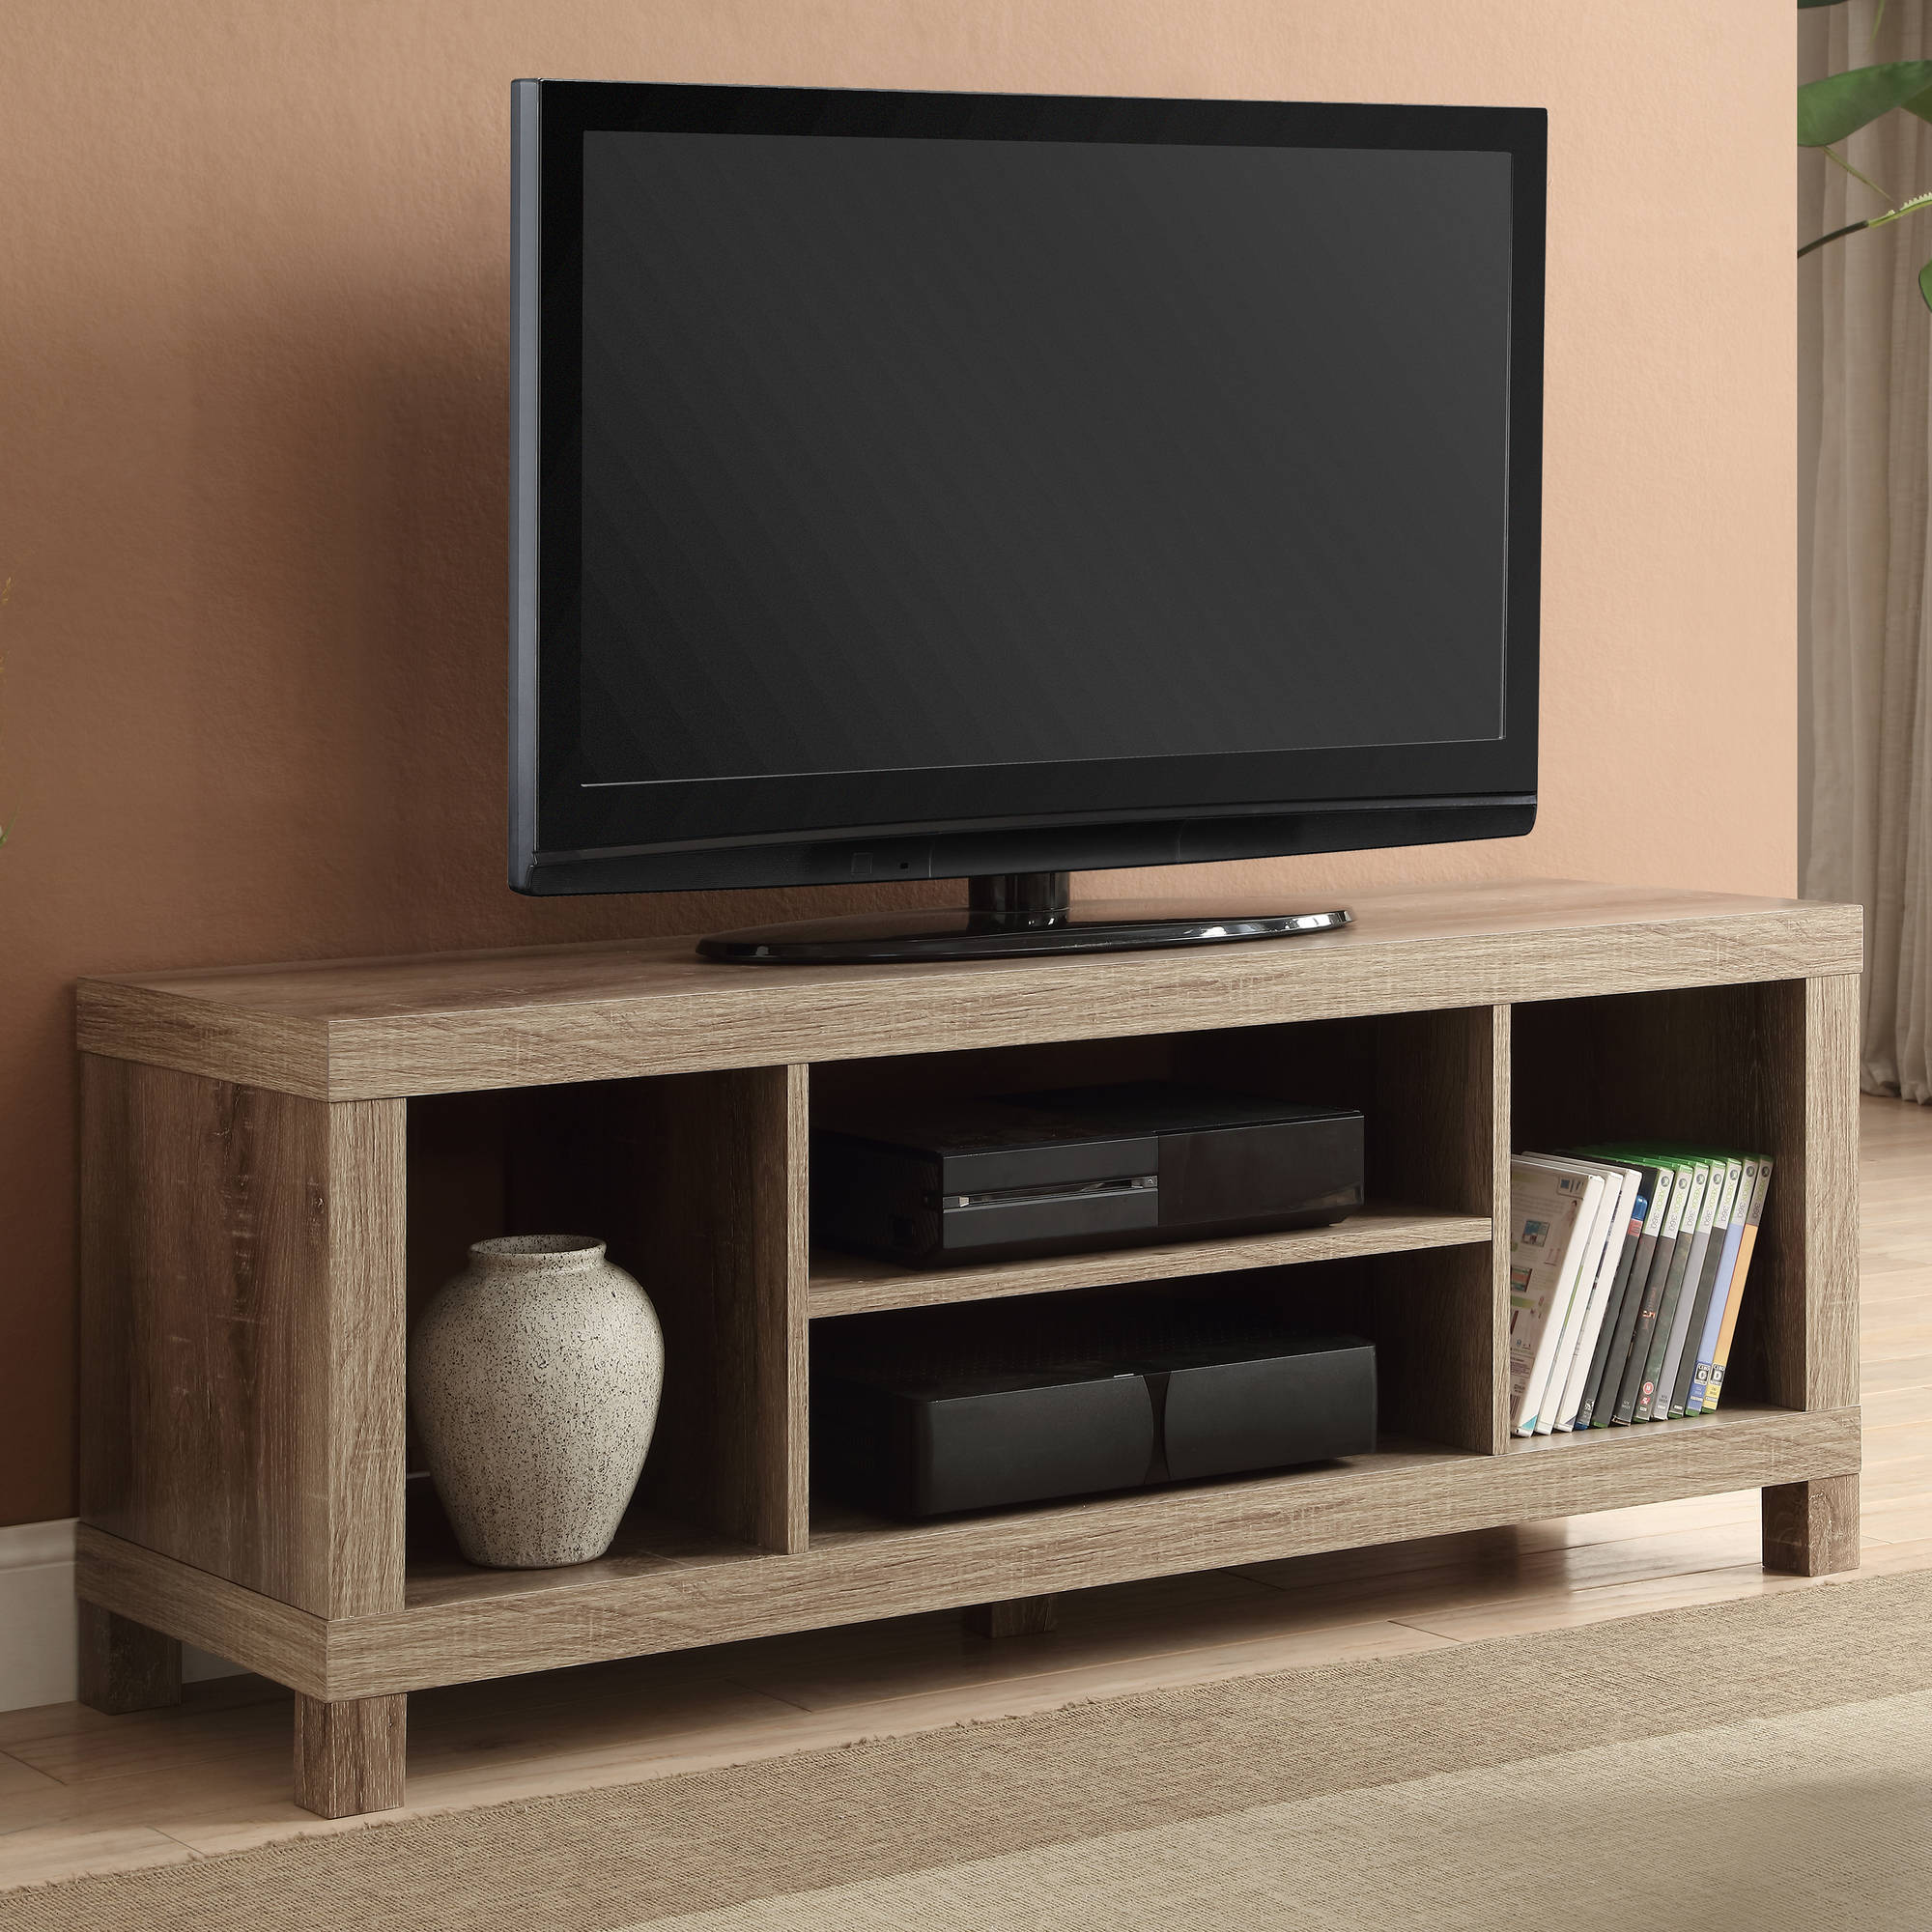 customise stands wall units tv custom media made rack stand it b mounted zespoke category white product hooptangle